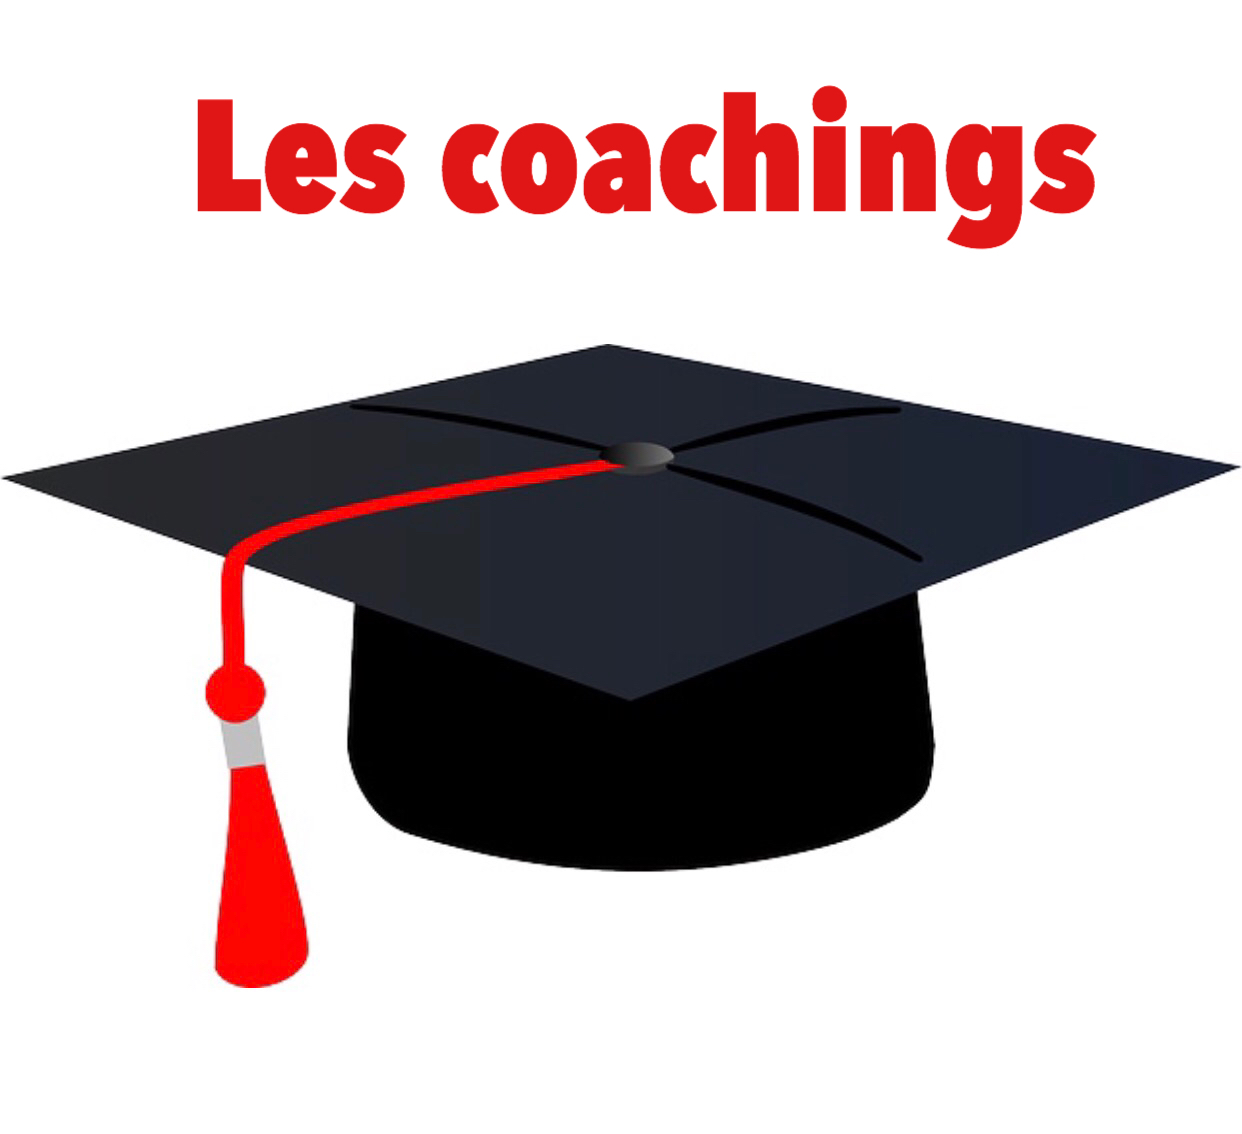 Coaching pédagogique, coaching de concentration, de motivation, d'orientation